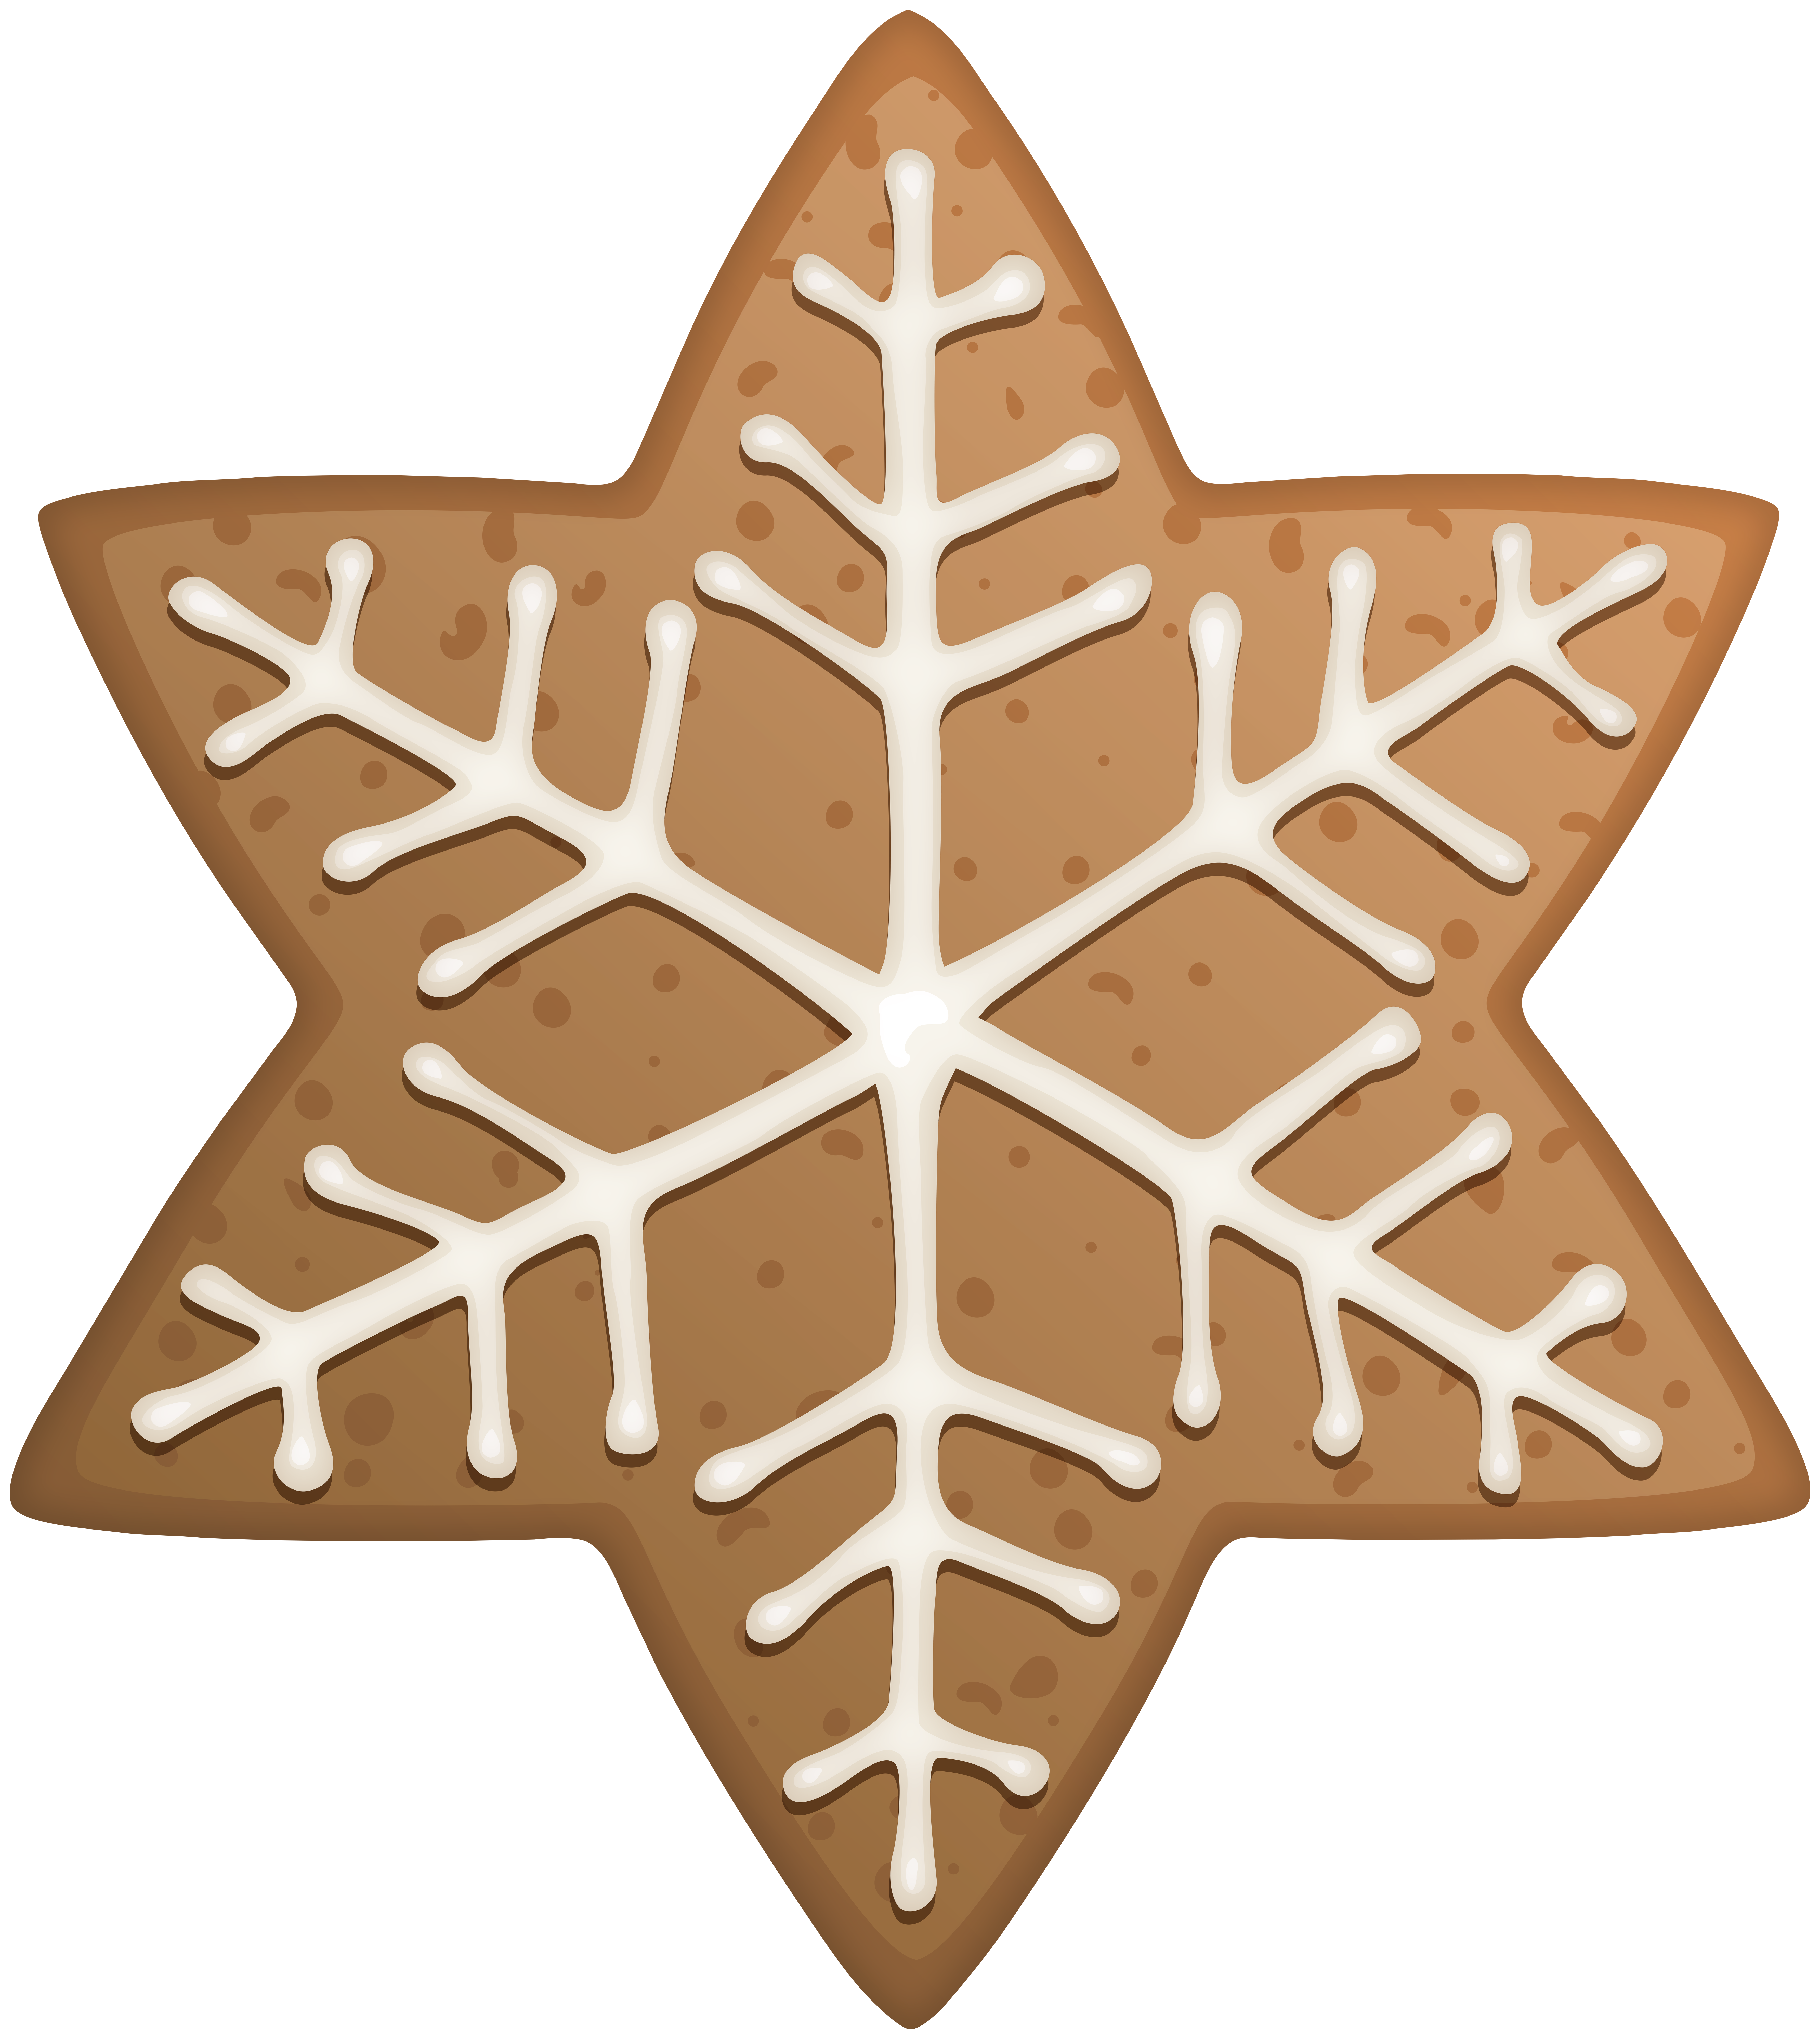 Gingerbread clipart star. Cookie png clip art